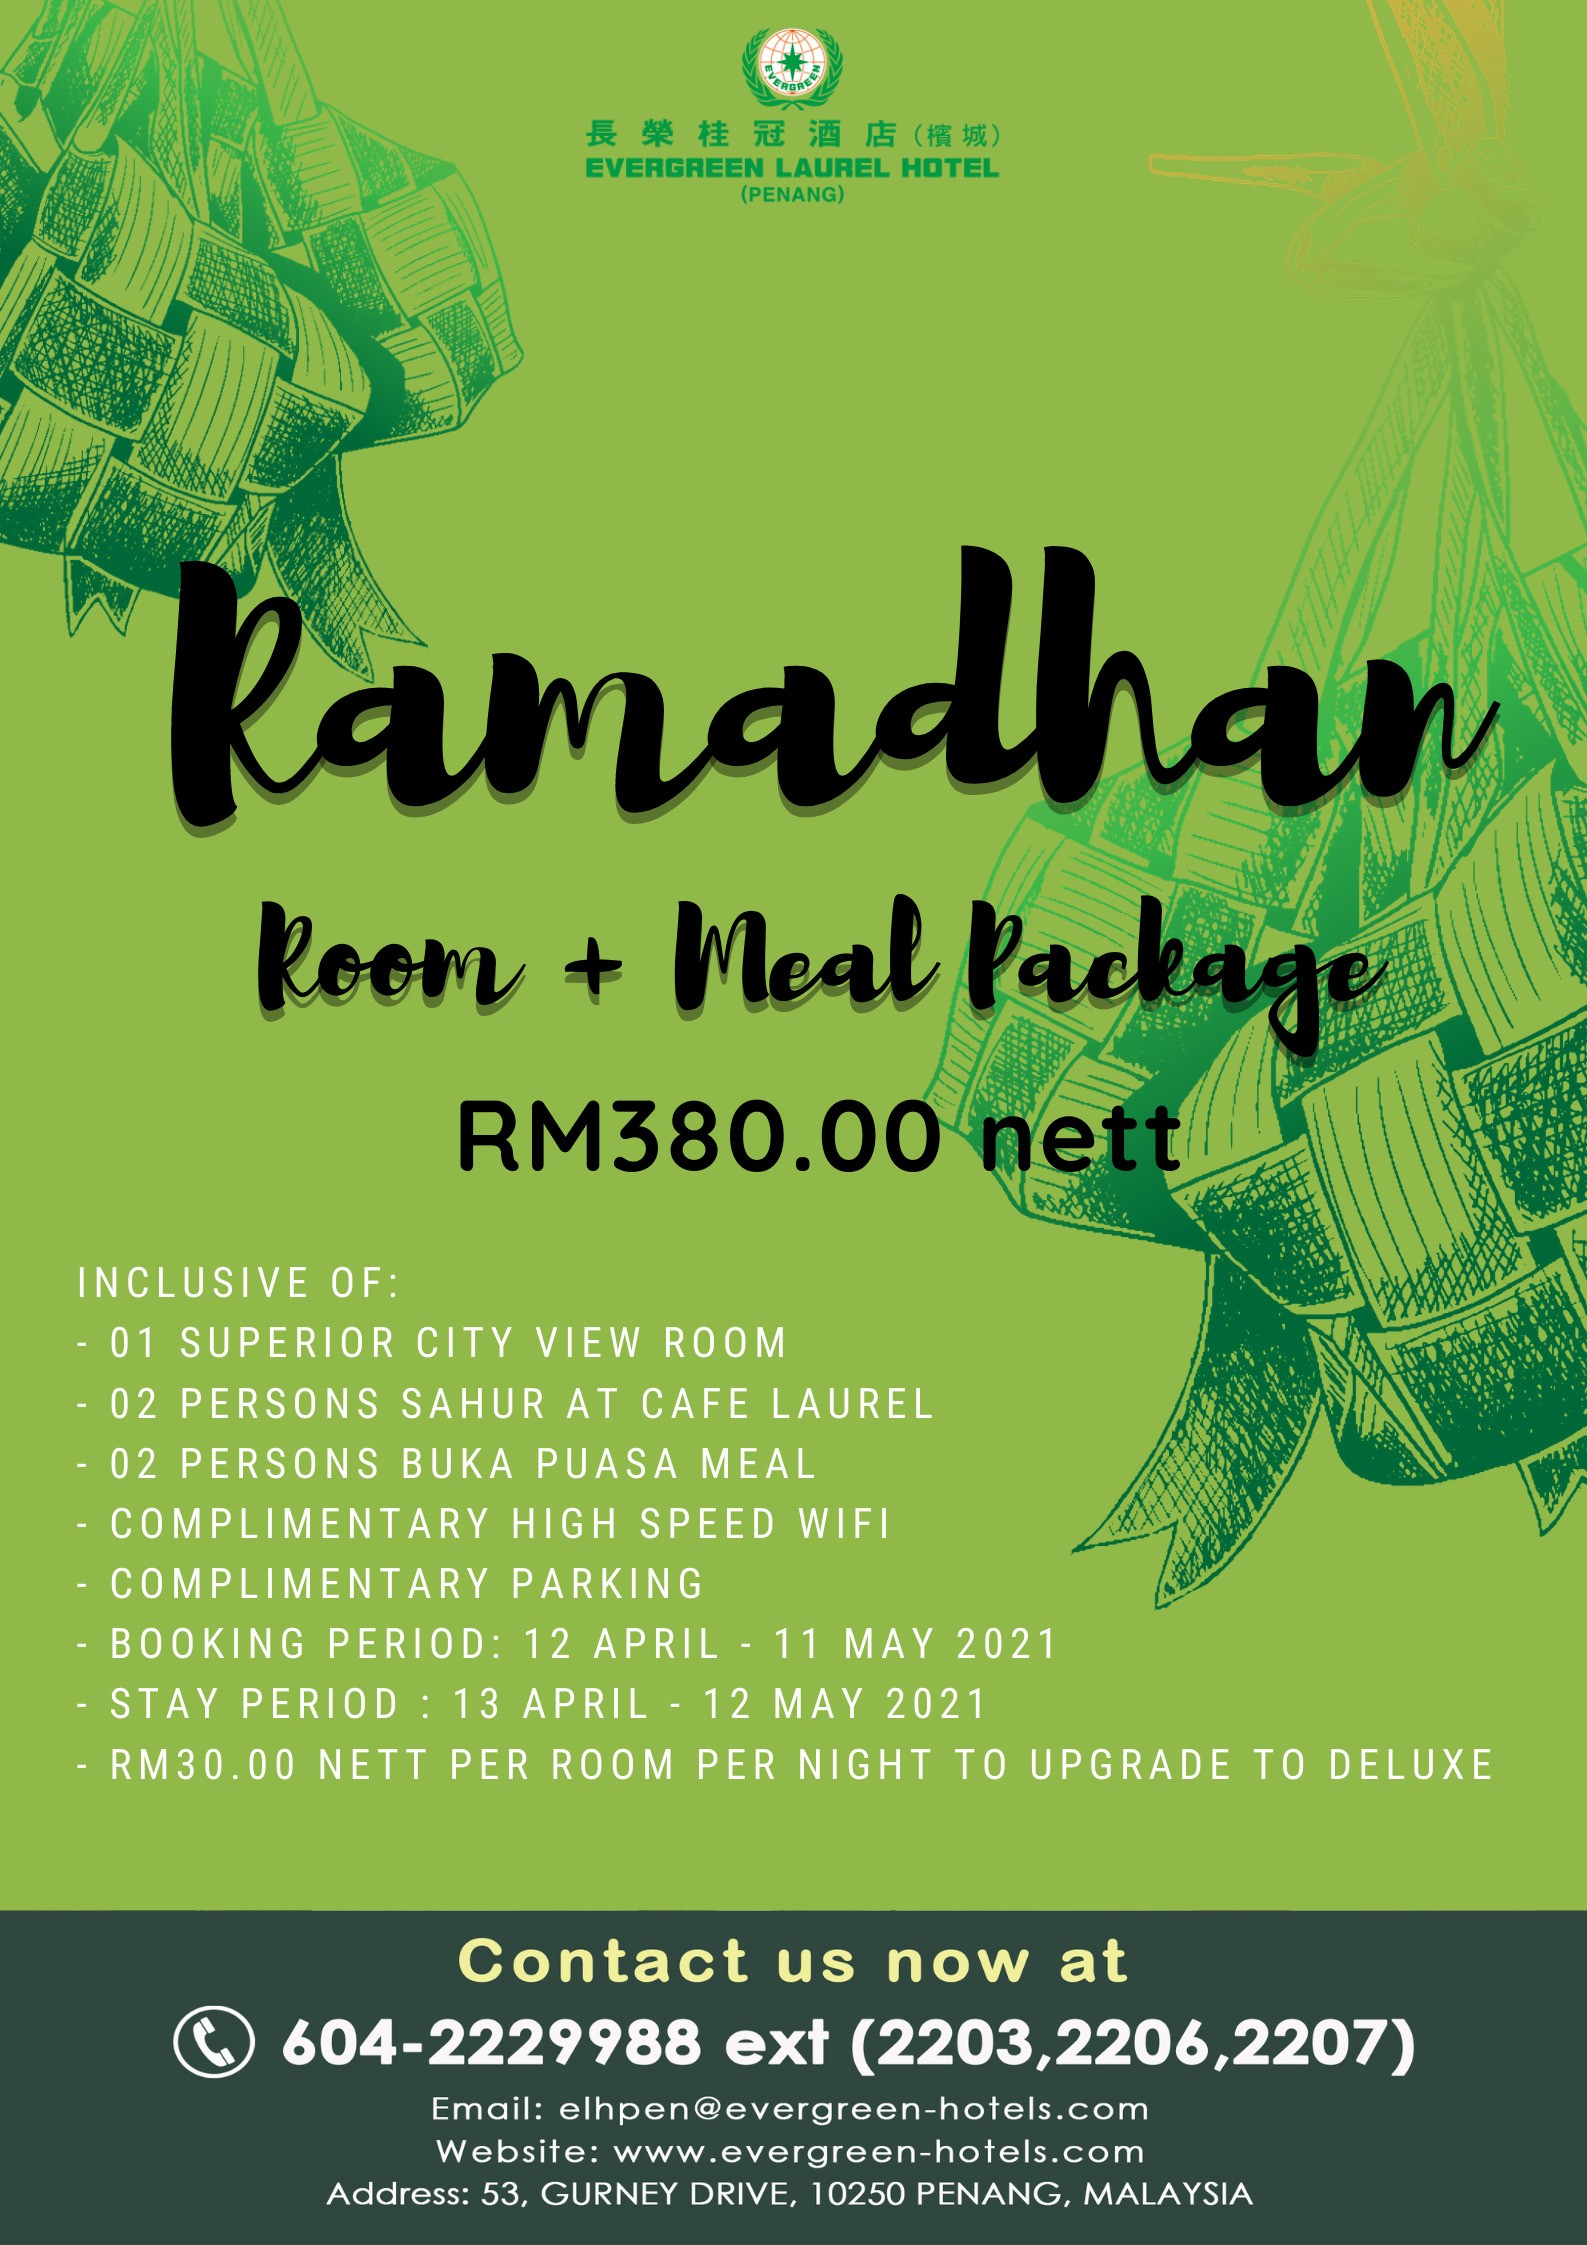 Ramadan Room & Meal Package Evergreen Laurel Hotel